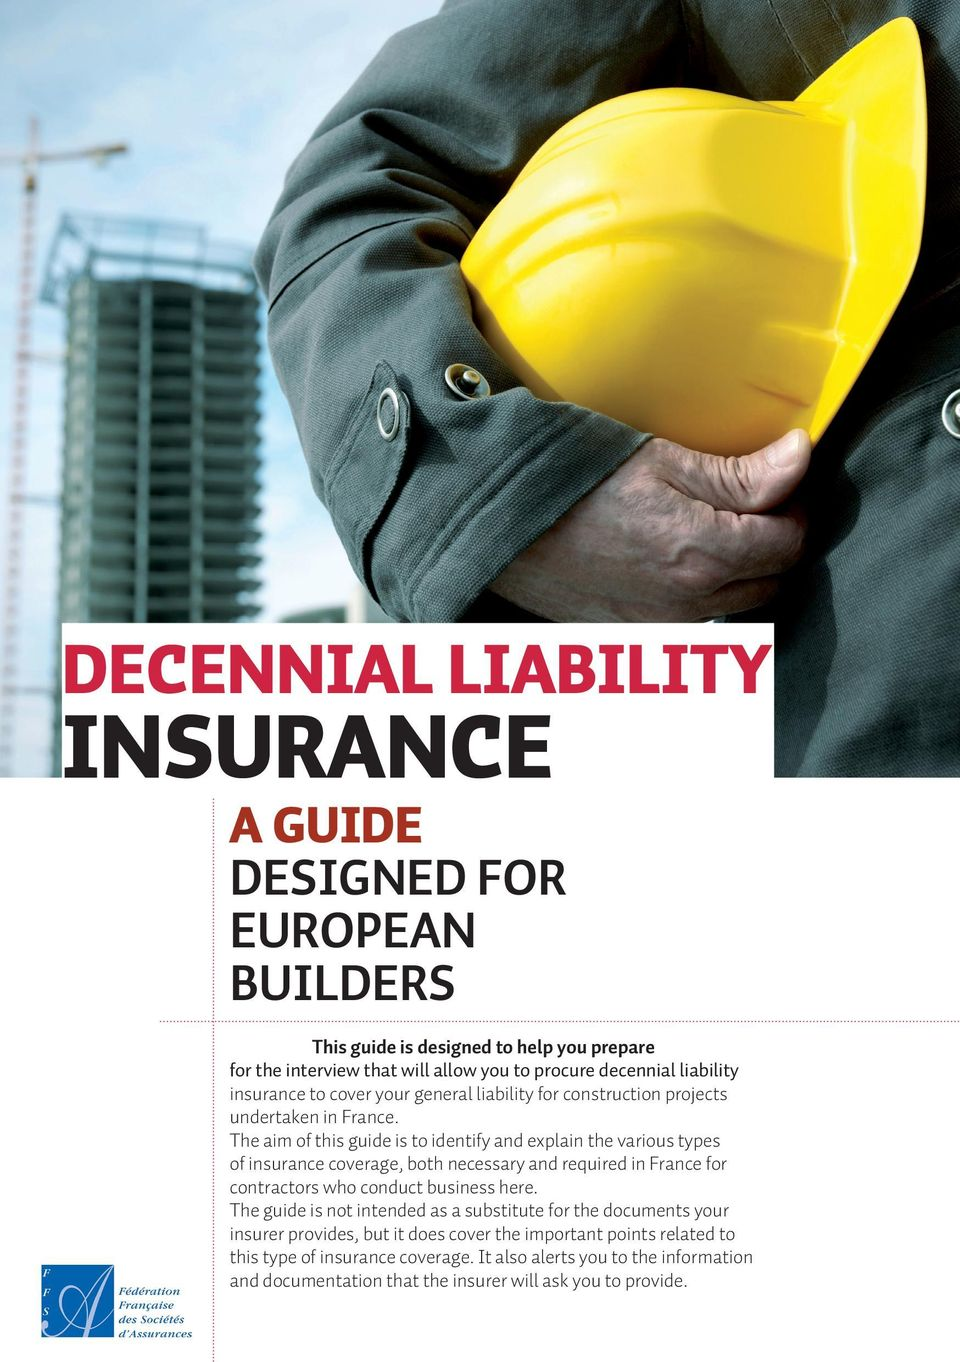 The aim of this guide is to identify and explain the various types of insurance coverage, both necessary and required in France for contractors who conduct business here.